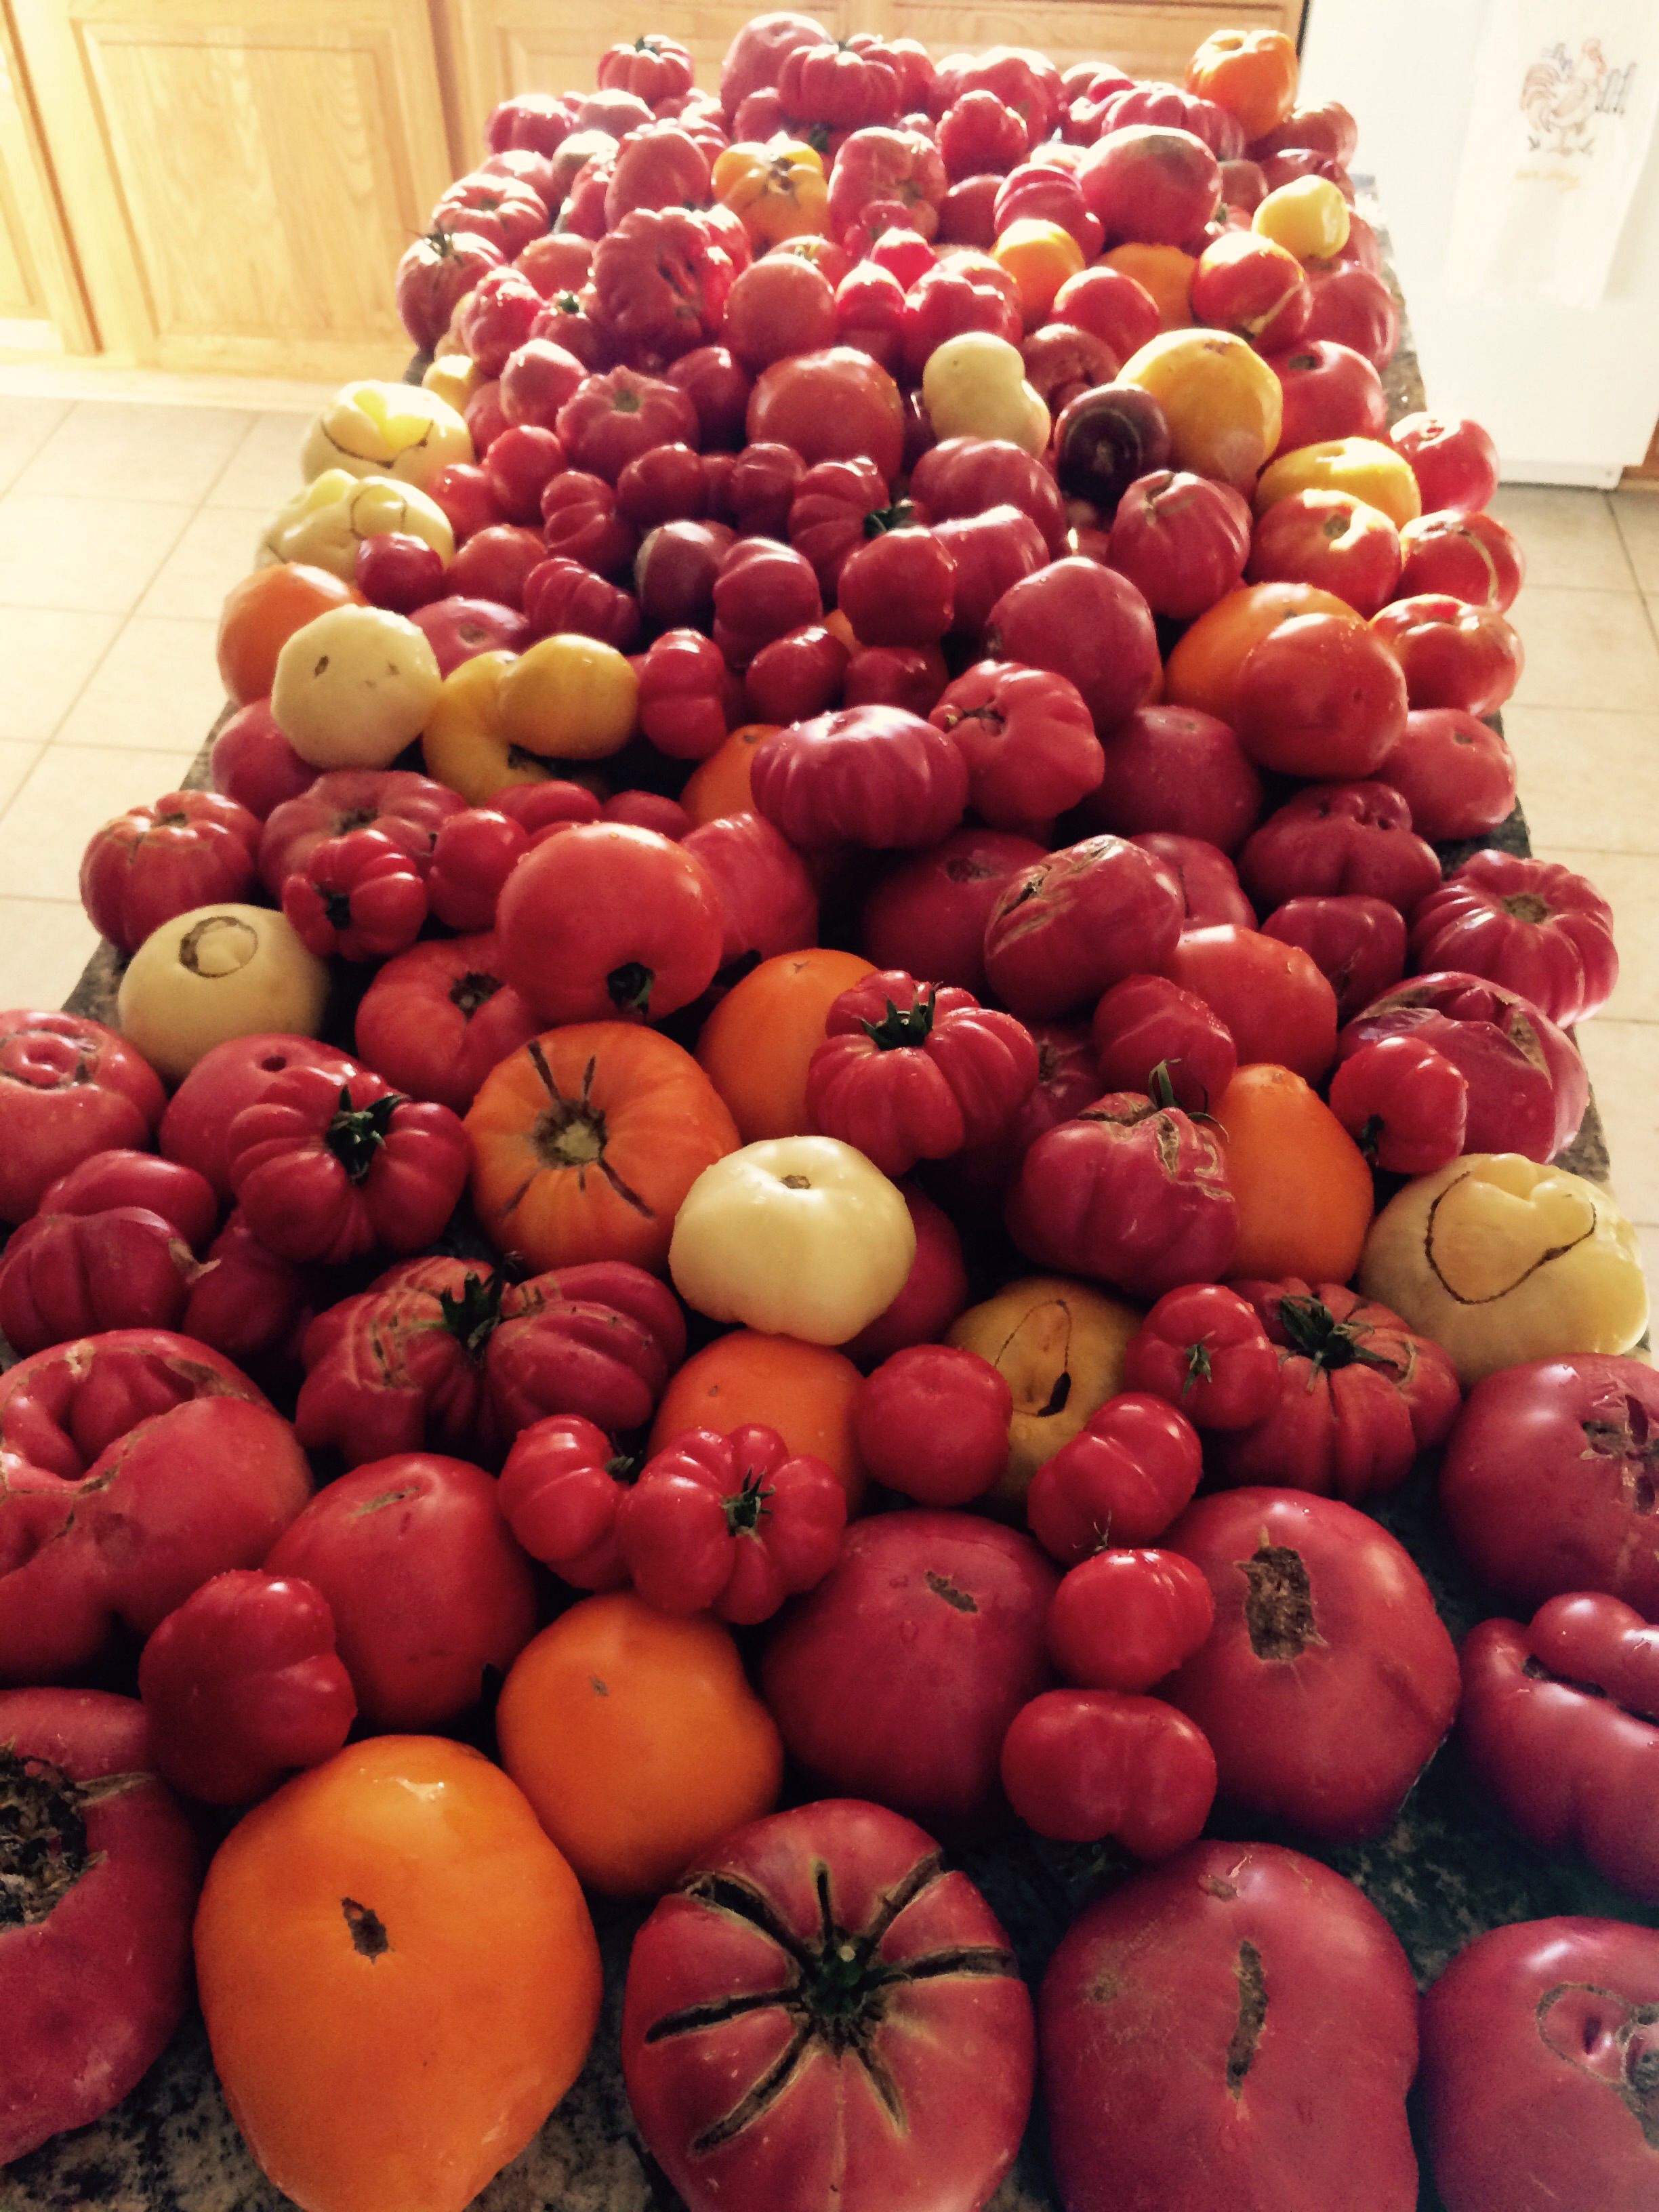 We have reached record amounts of hierloom tomatoes on our farm this year